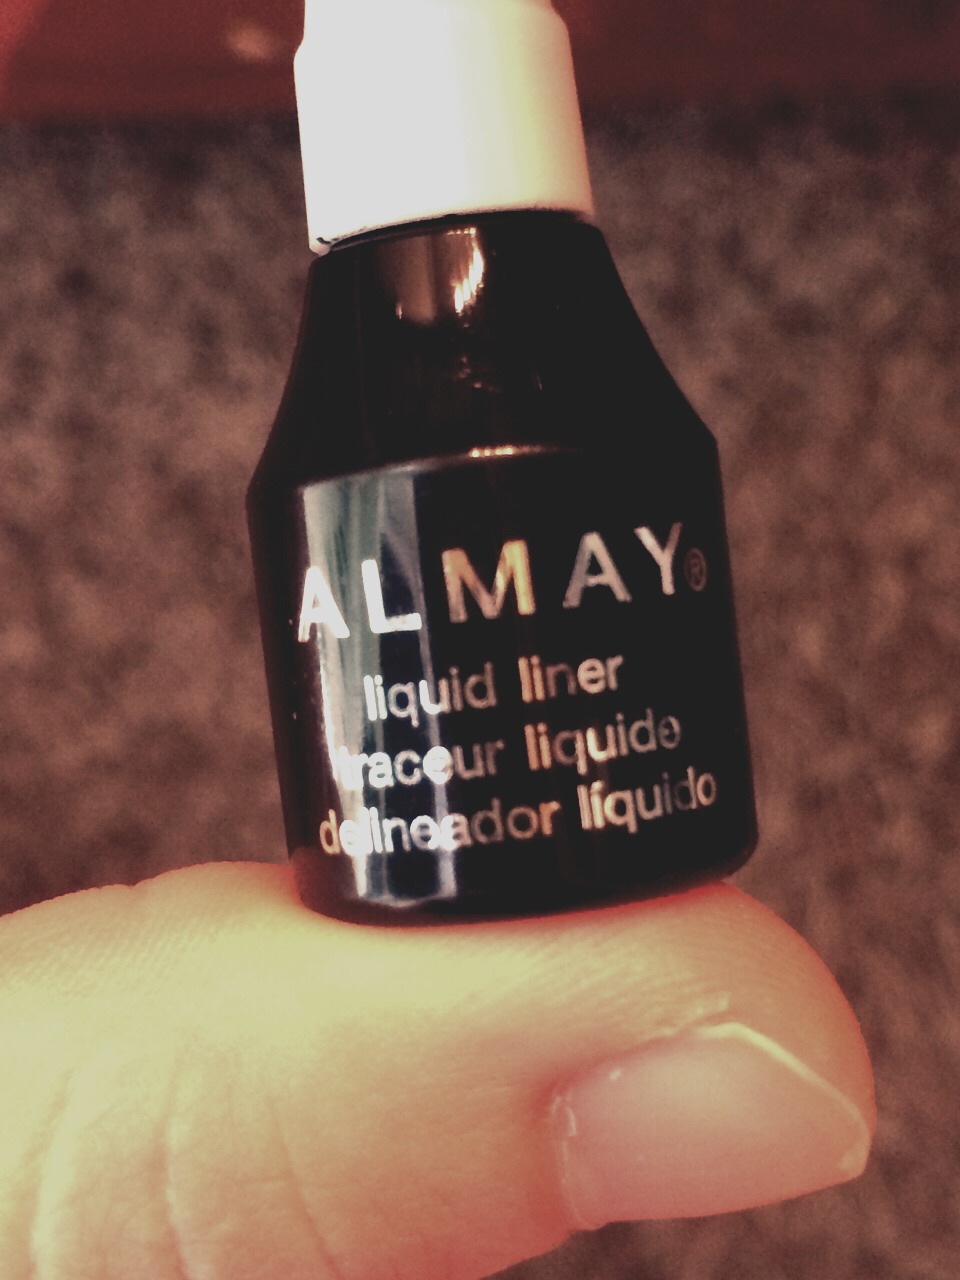 Take any liquid eyeliner of your choosing. It does not matter the color or brand. I prefer this Almay liquid eyeliner in black.